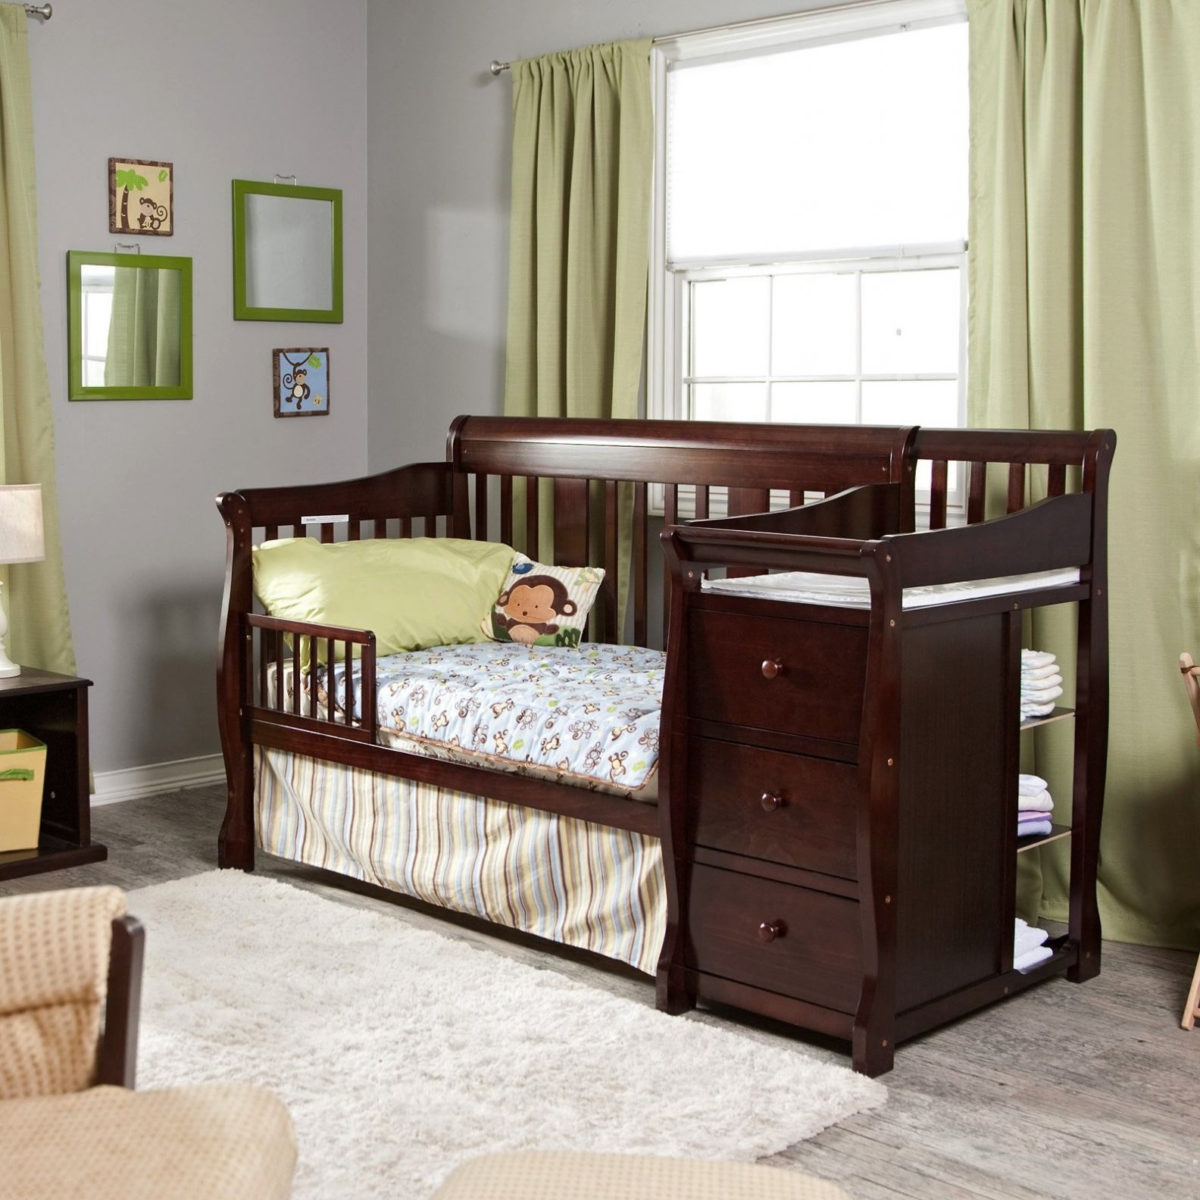 convertible baby cribs with changing table divine storkcraft portofino convertible crib changing table 04586 479 for YJPCINB